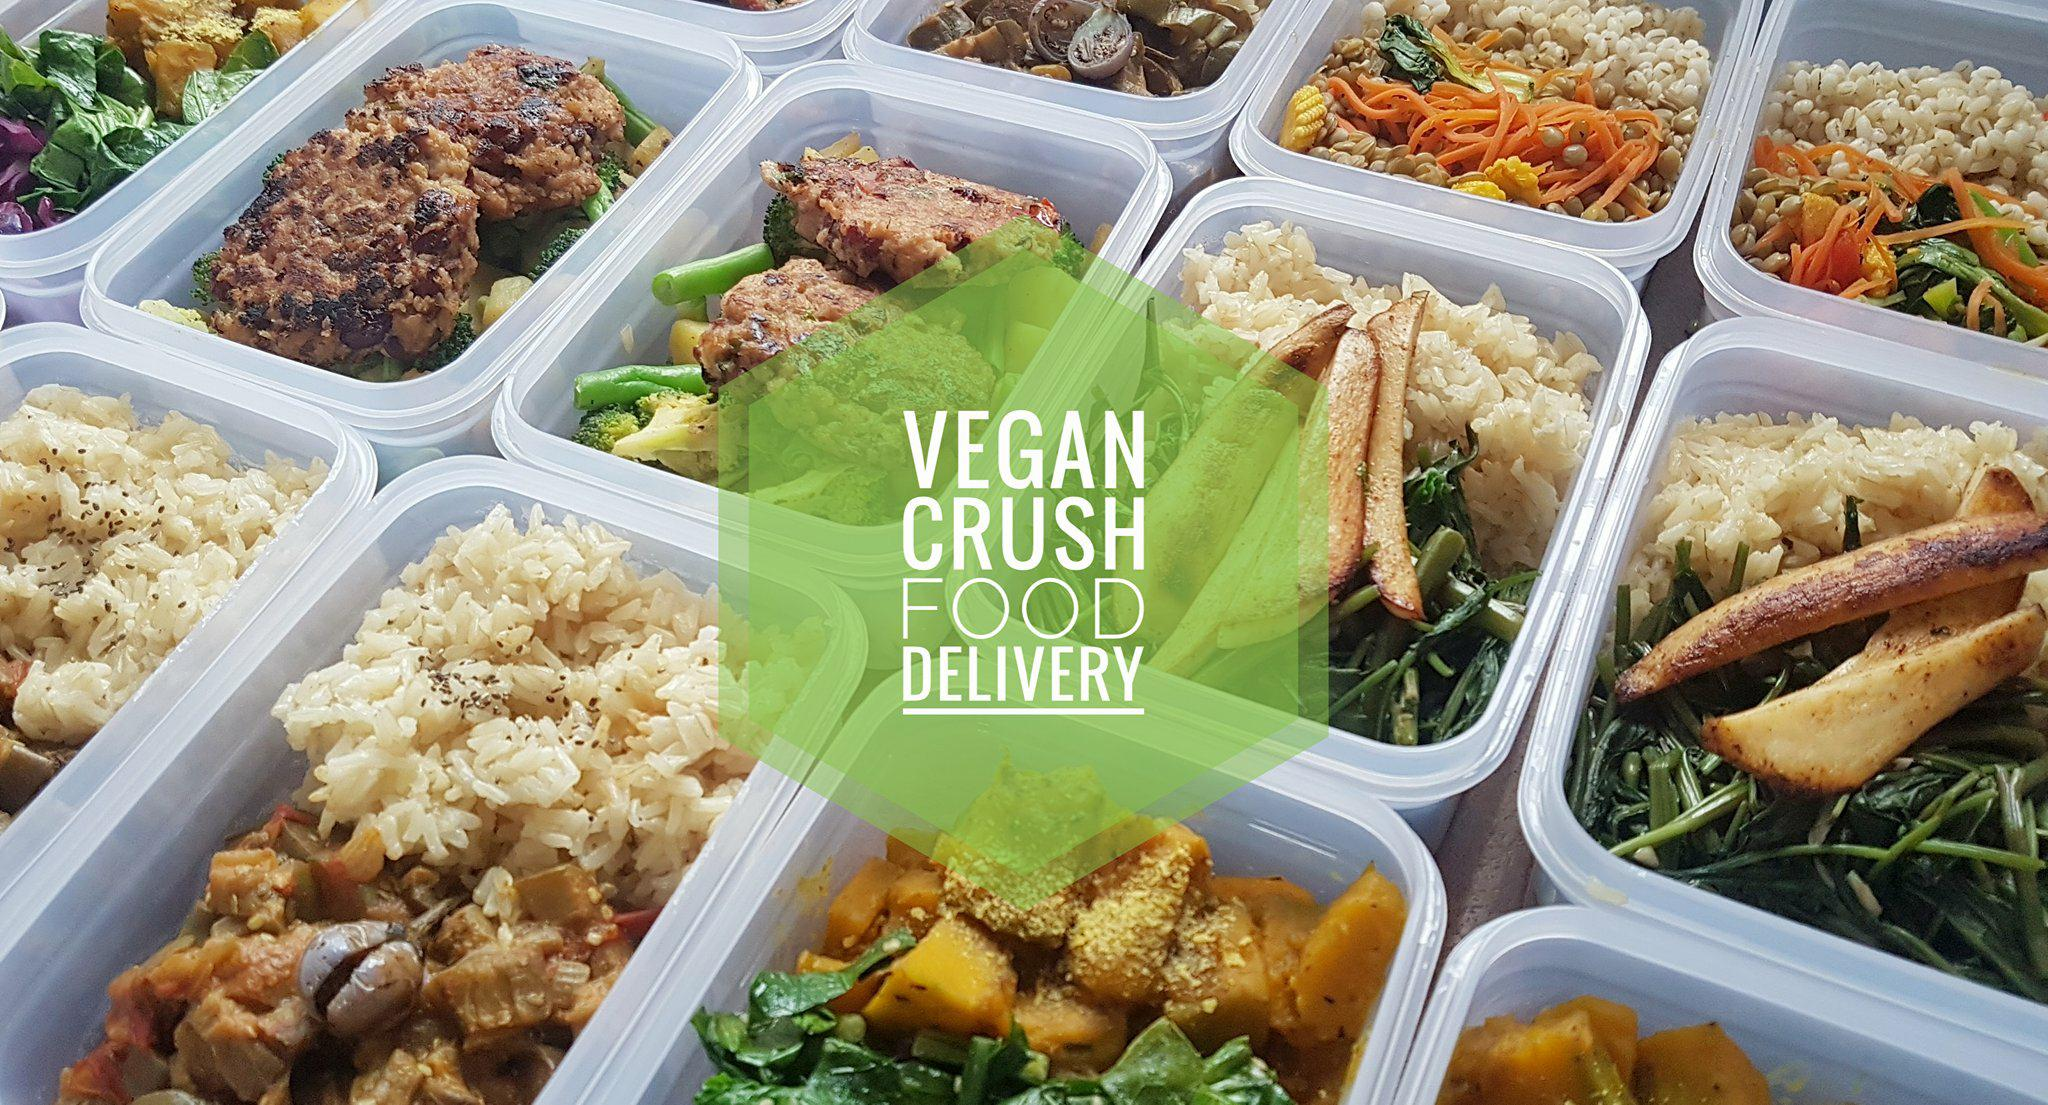 Vegan Food Delivery Bangkok, Thailand